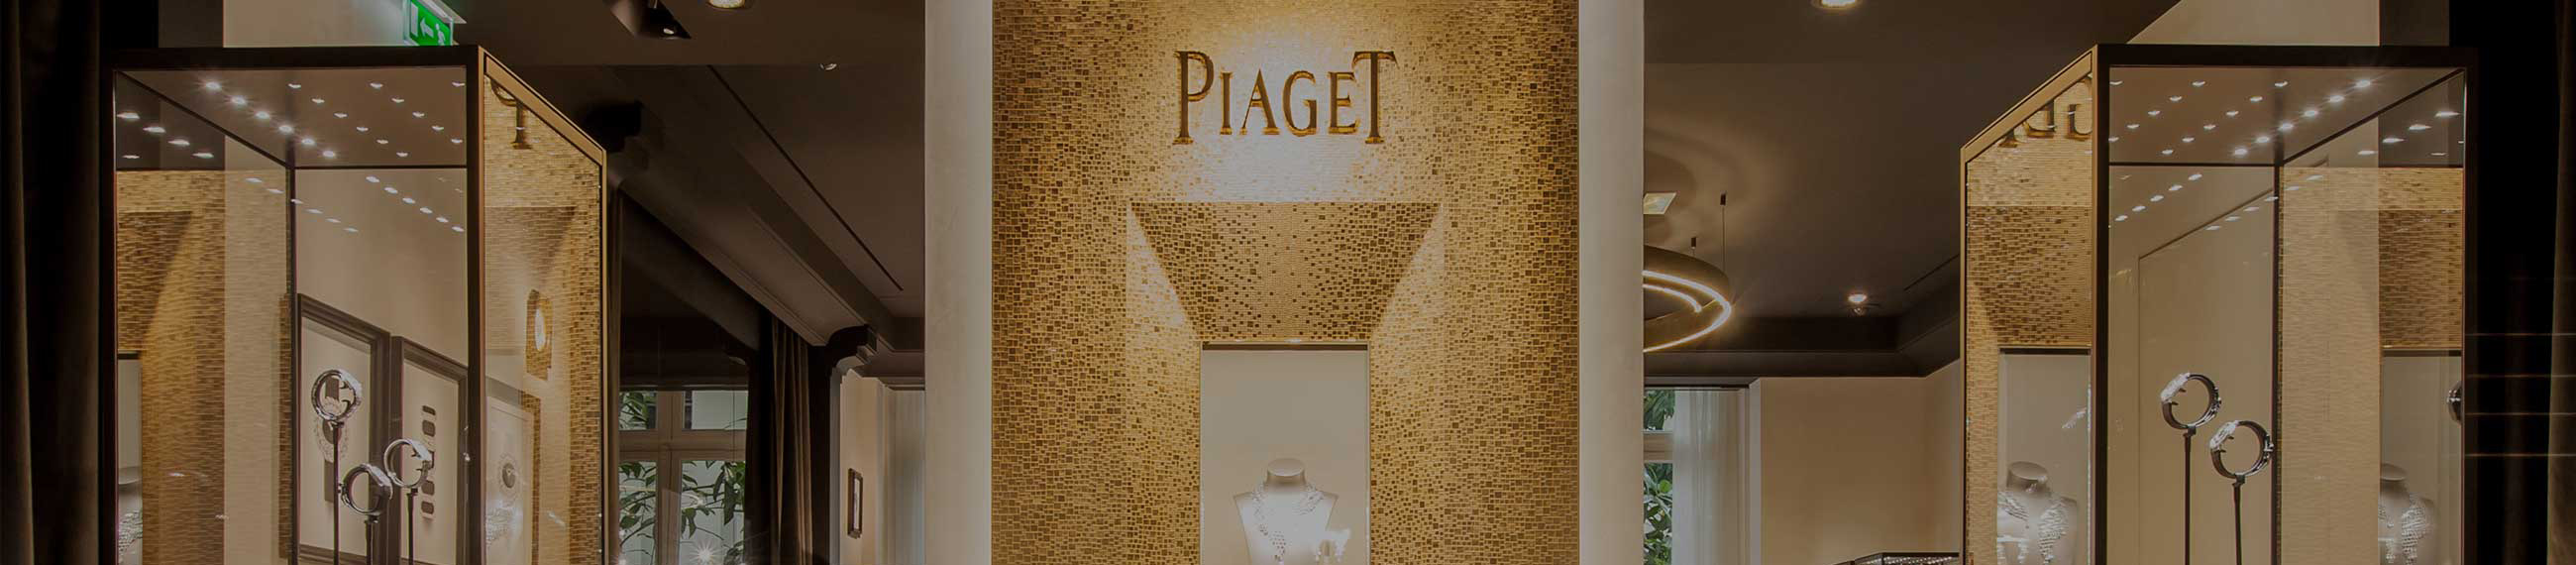 Piaget boutiques in new york luxury watches jewelry online find a boutique publicscrutiny Images